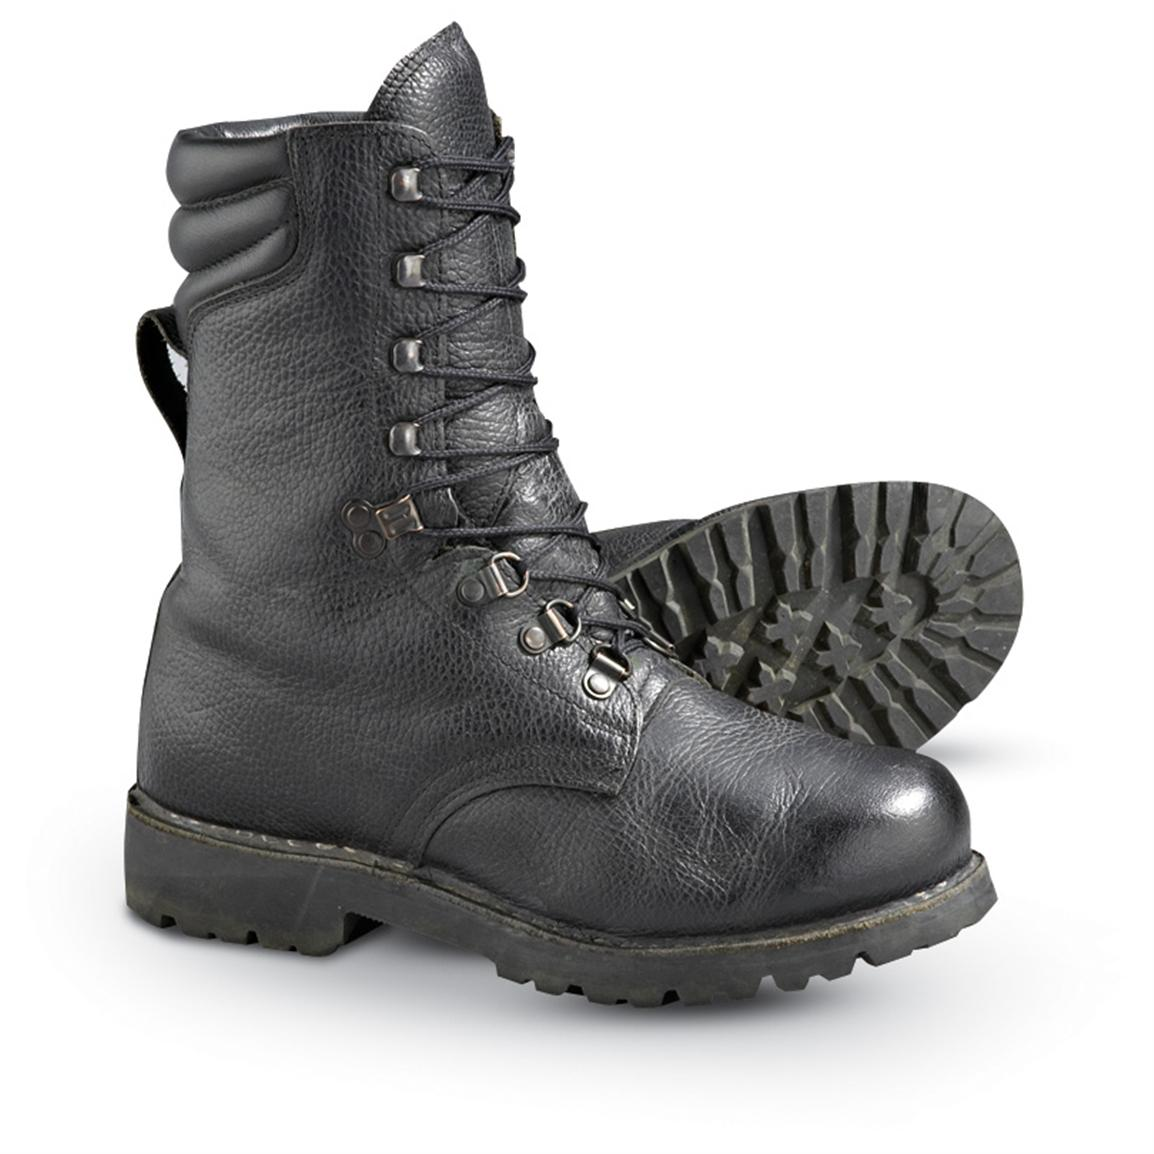 Used German Military Combat Boots, Black